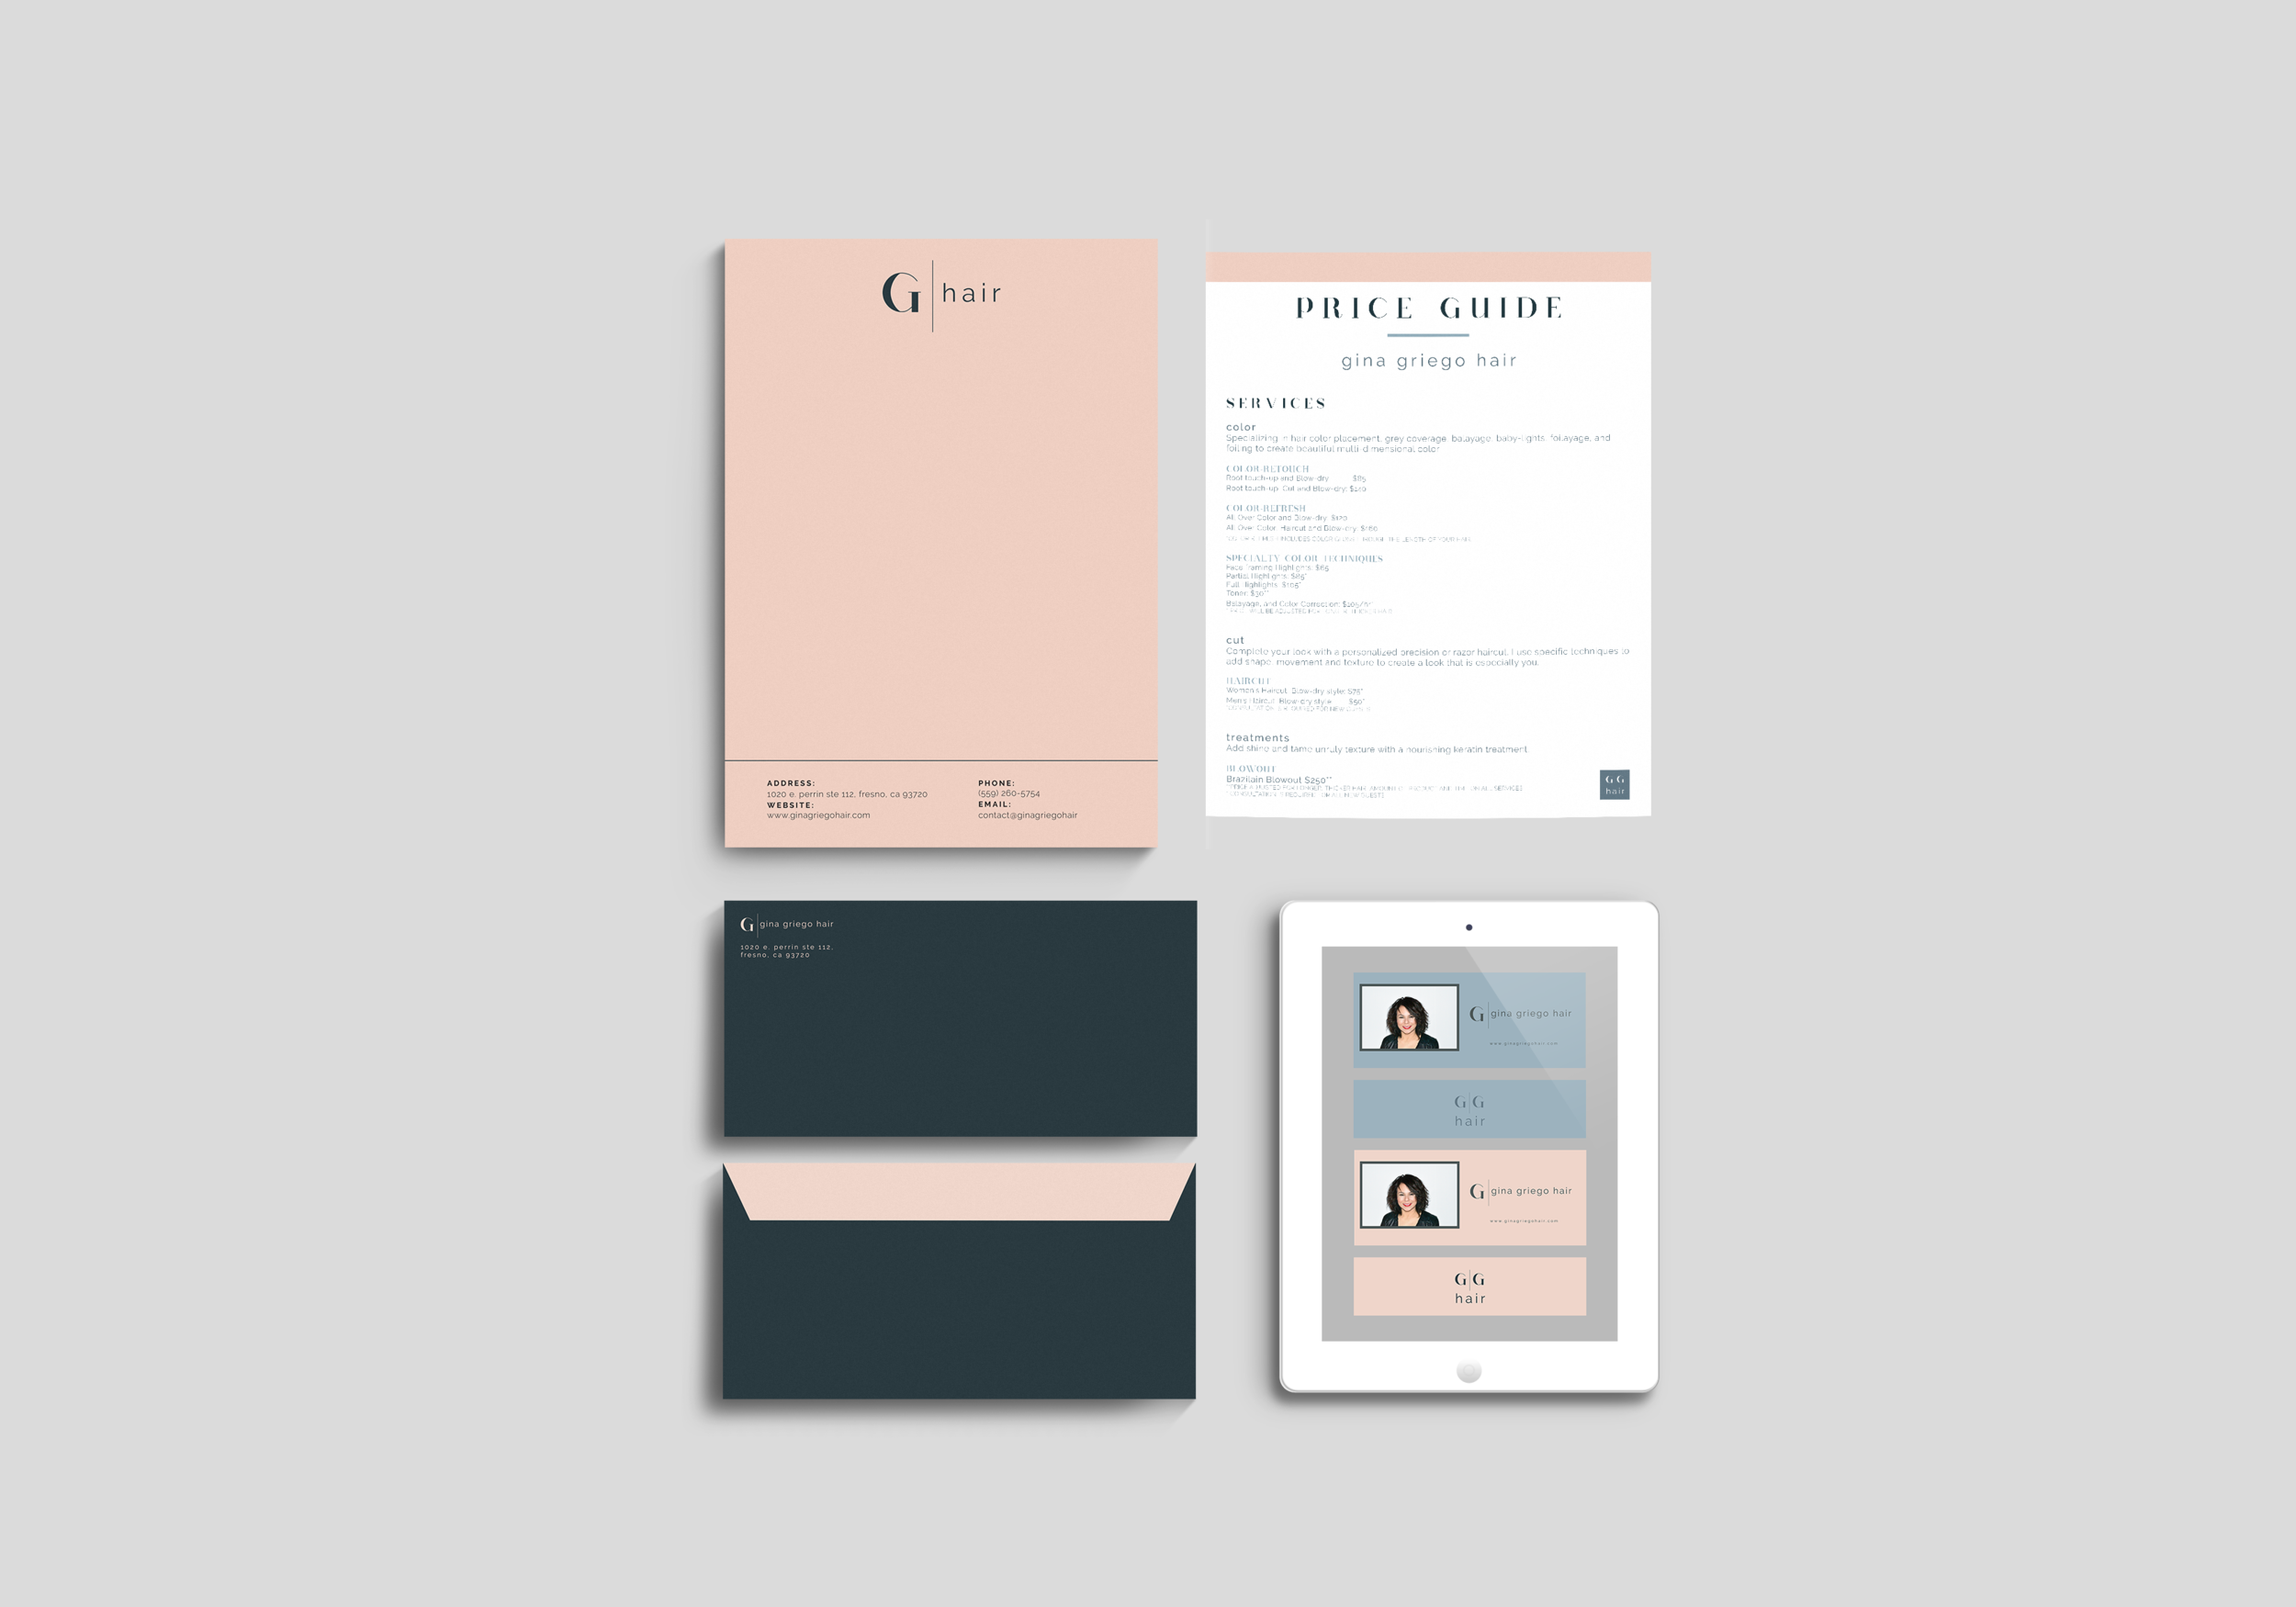 Letterhead Envelope Price Guide Banners.png